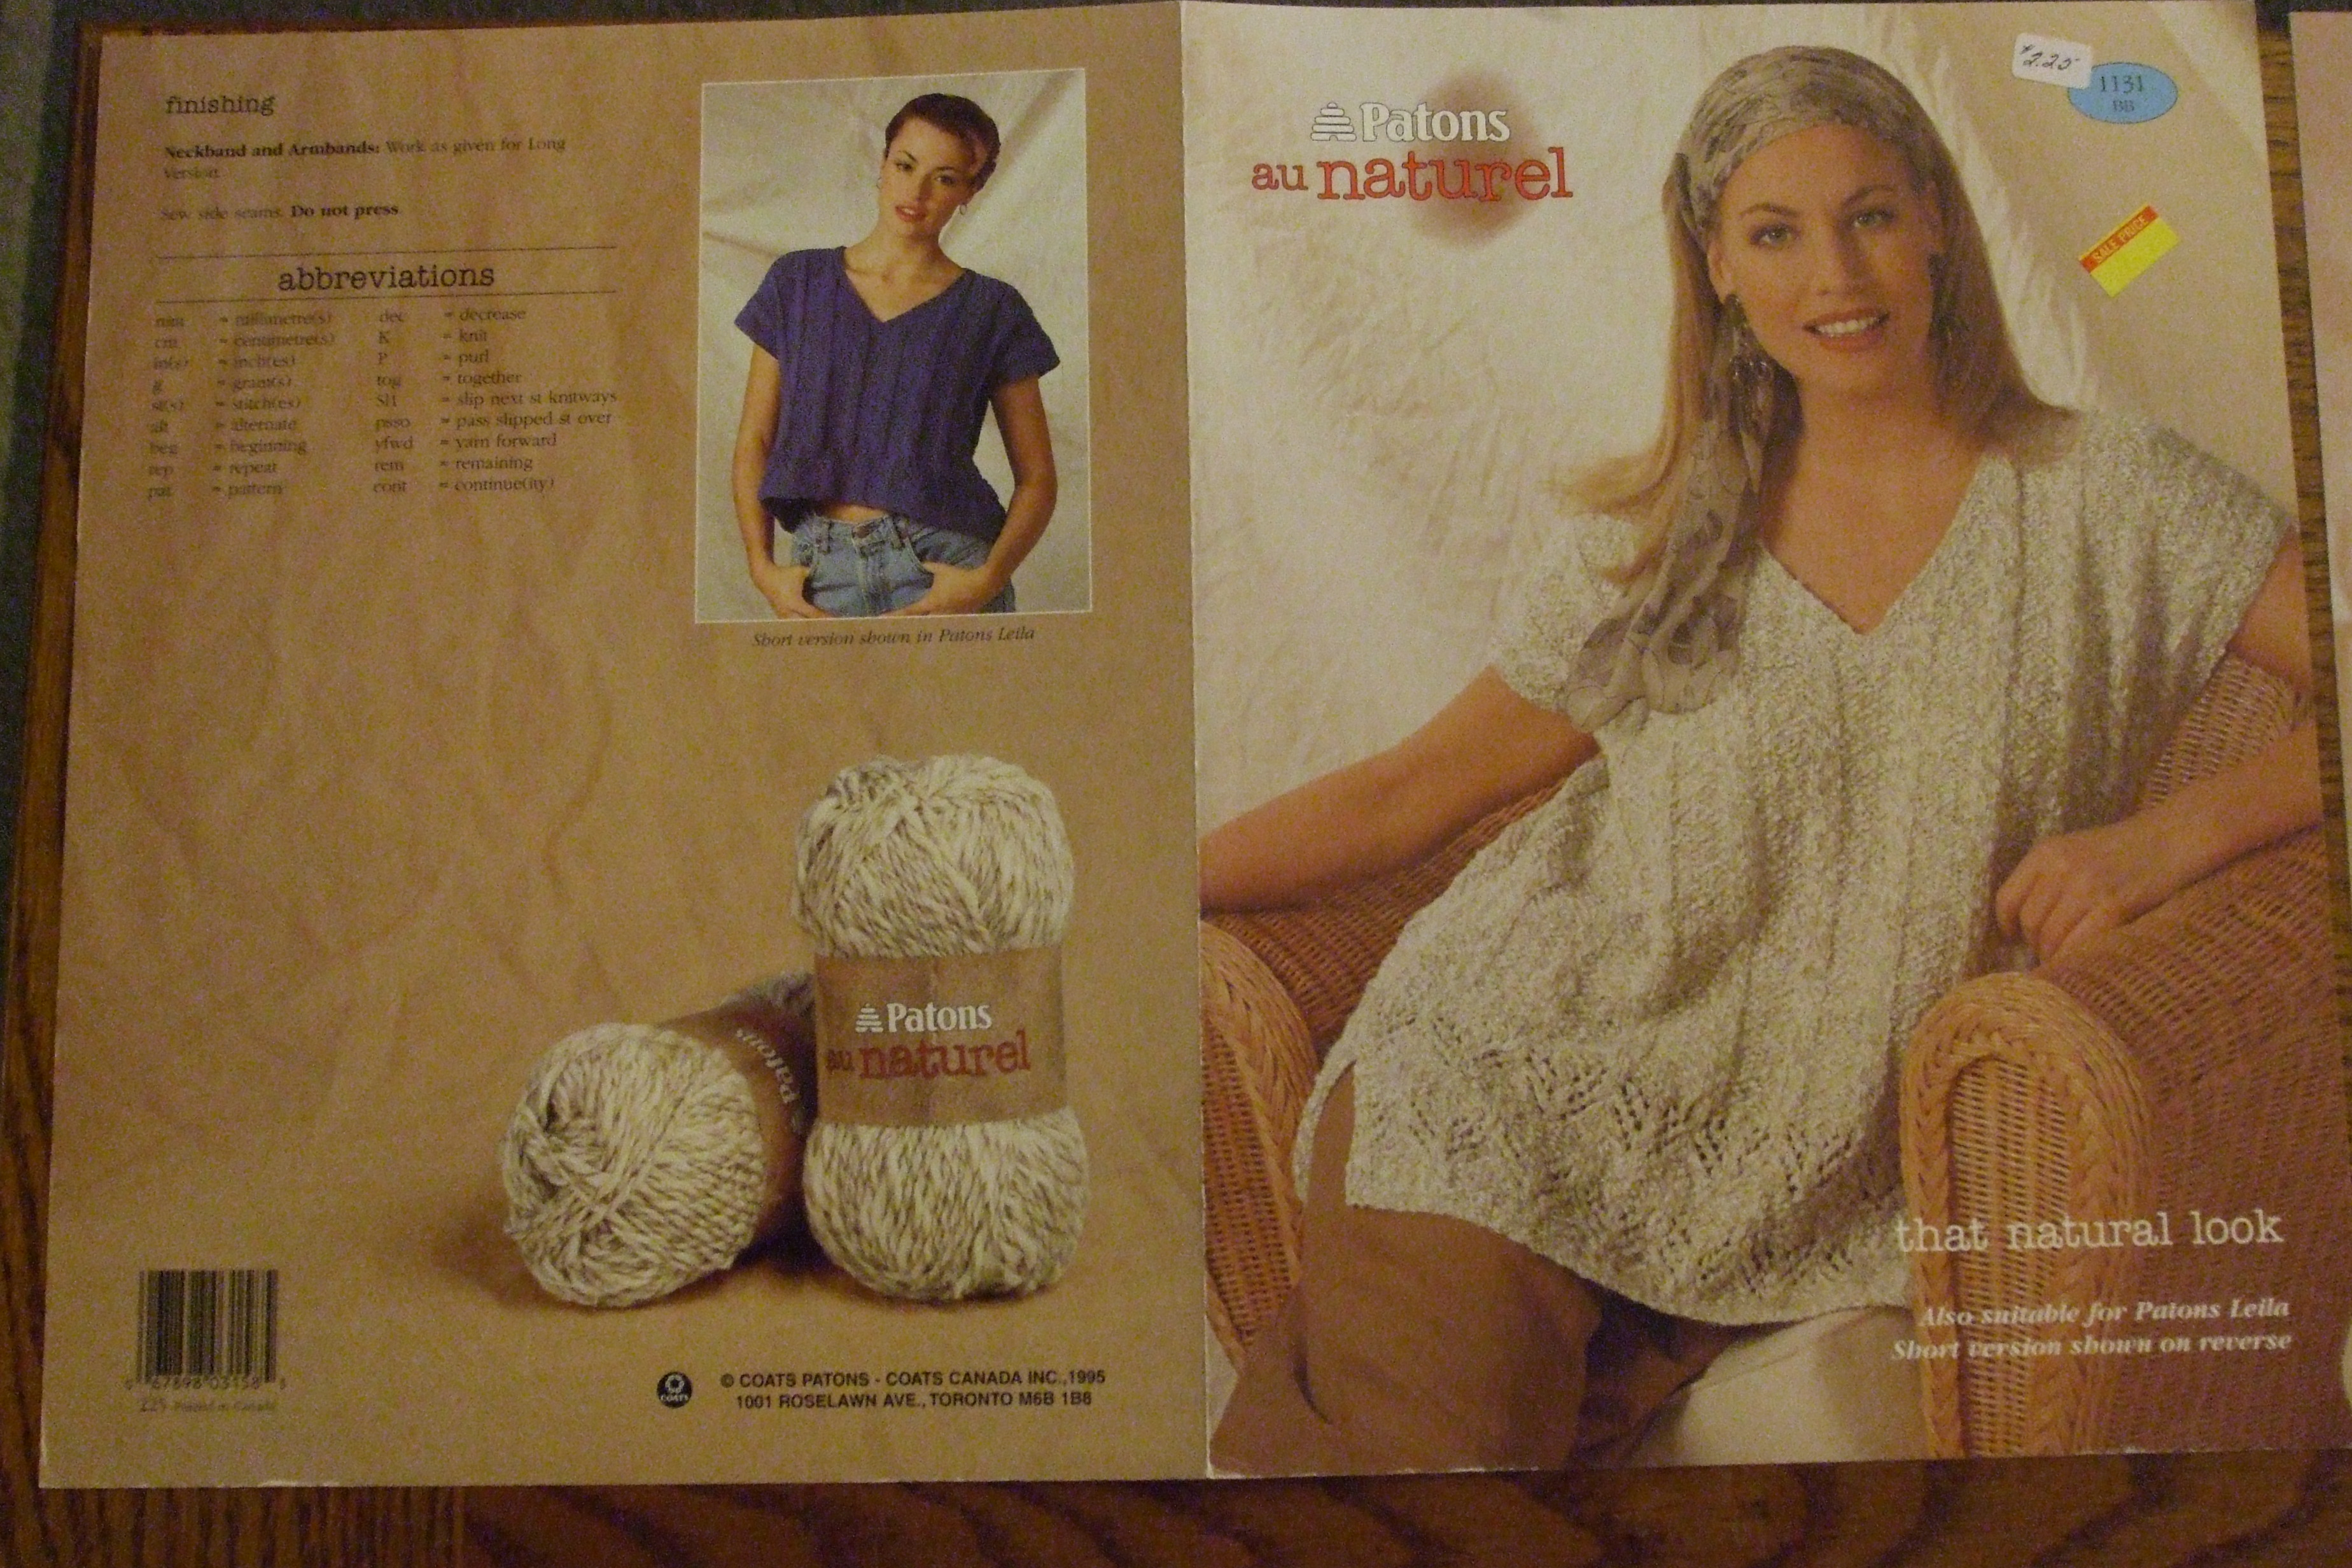 Knitting Patterns For Women Patons Knitting Patterns Women Pullover Sweater Vest Tops Sz30 40